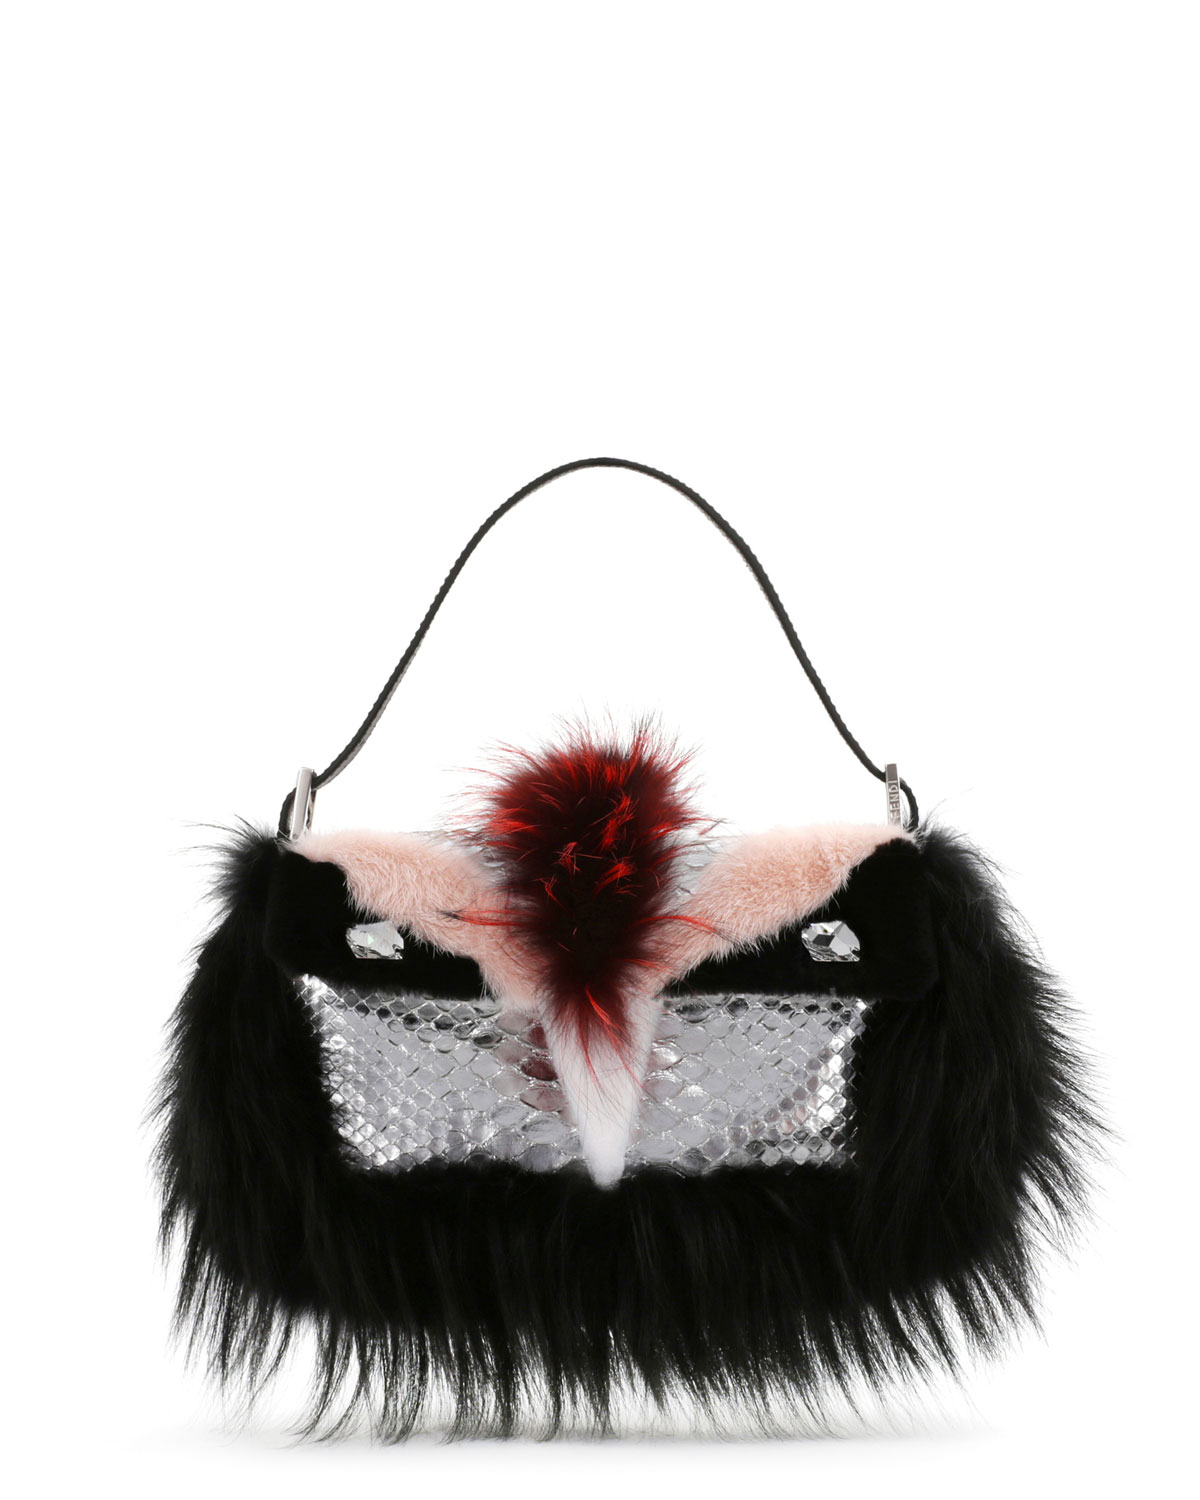 Fendi Fur Monster | Fendi Monster Fur | Kendall Jenner Keychain